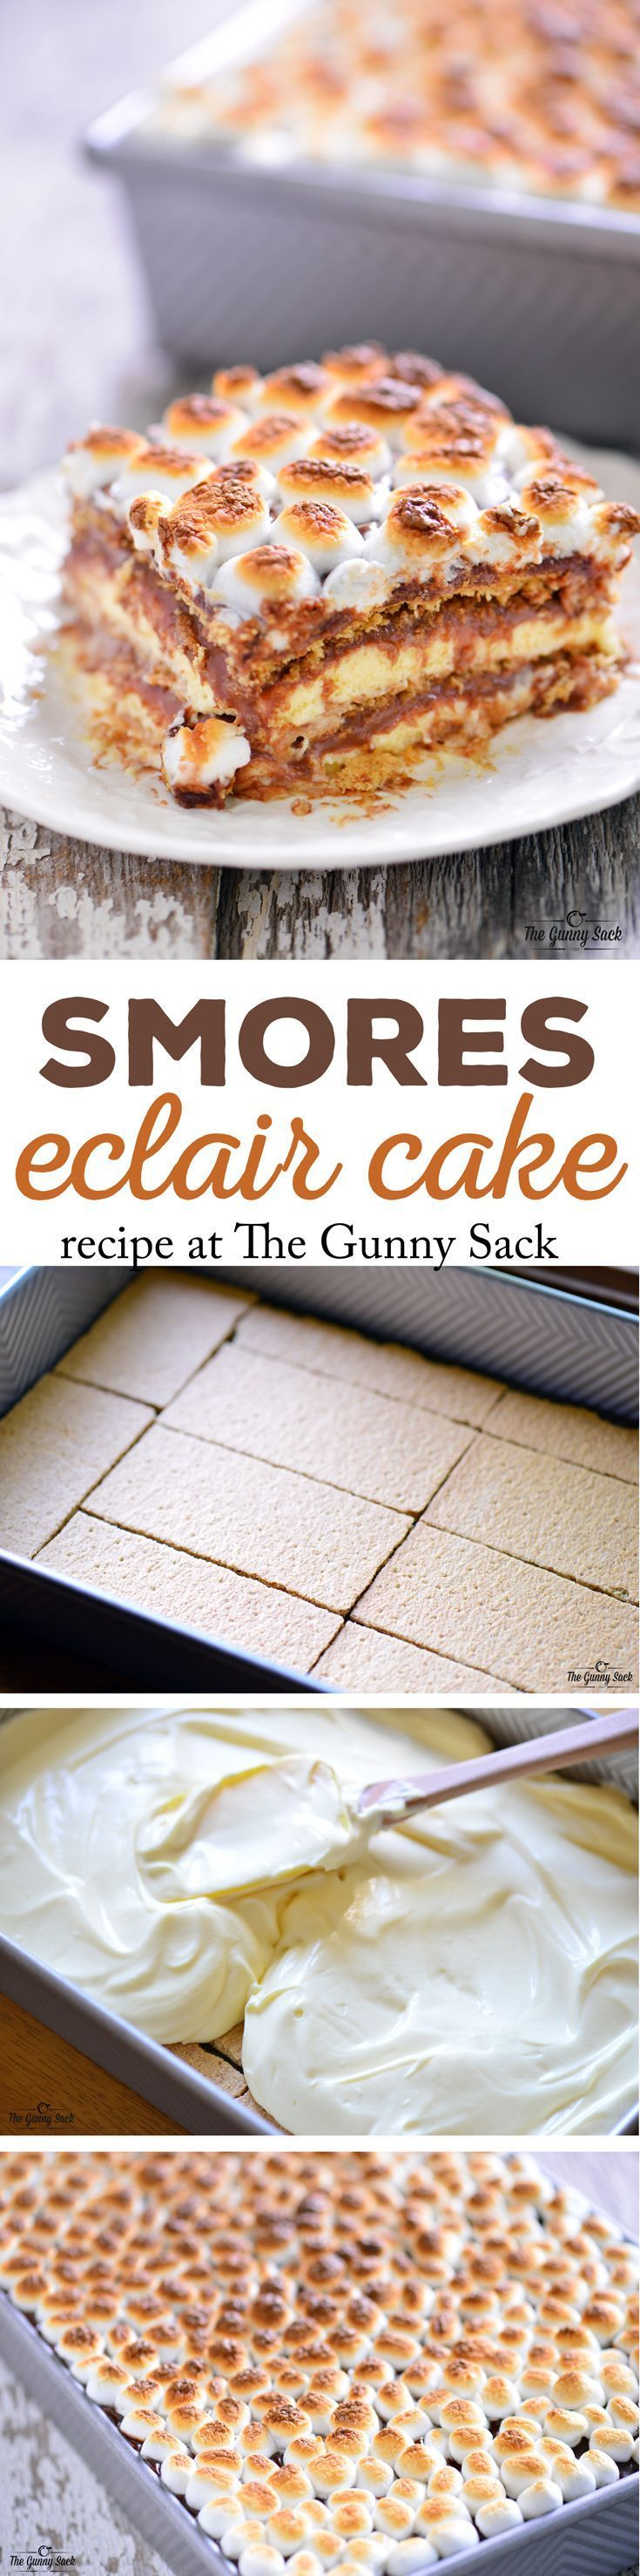 S'mores Eclair Cake - Has luscious layers of graham crackers, vanilla pudding and chocolate topped with toasted marshmallows.